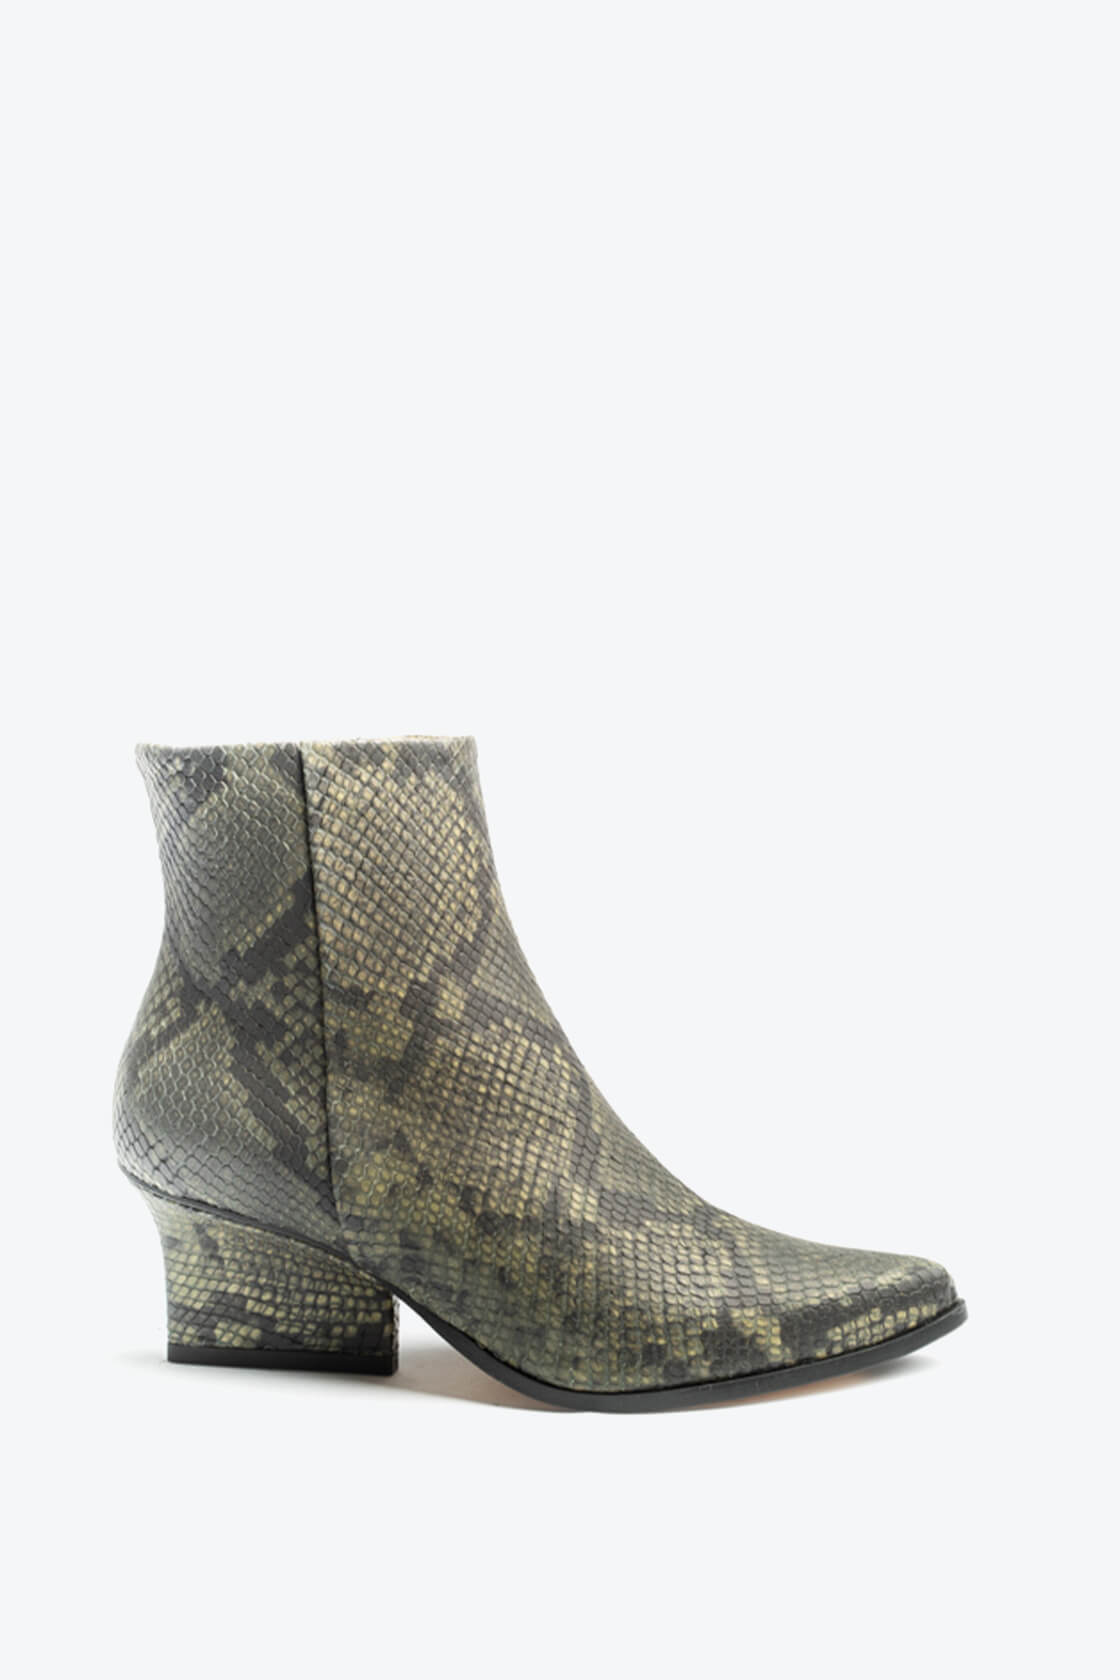 EJK0000085 Ryan ankle boots Green python 1